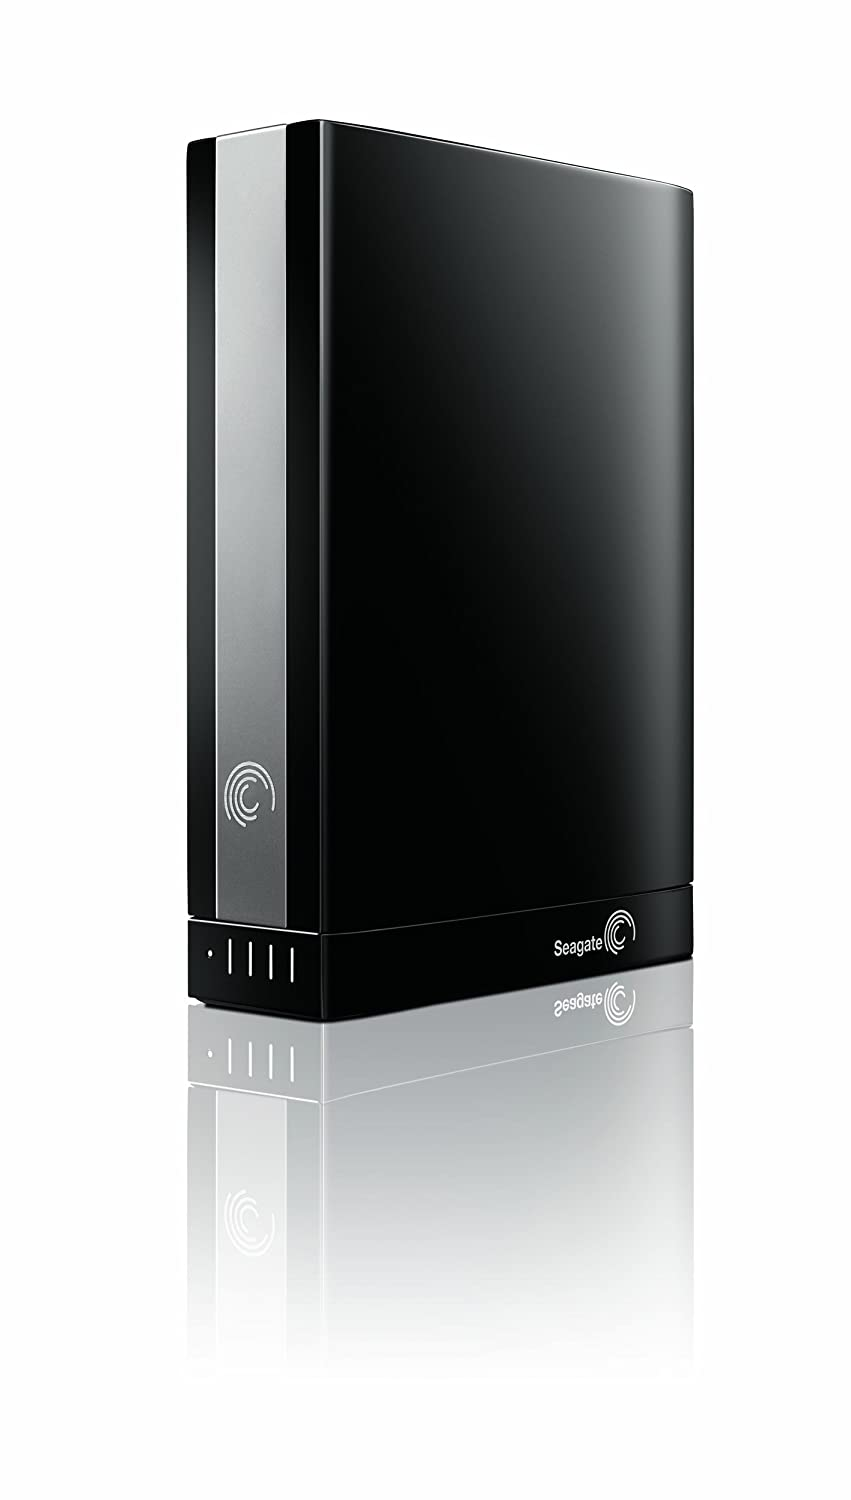 Seagate Backup Plus 3 TB FireWire 800/USB 2.0 Desktop External Hard Drive for Mac STCB3000100